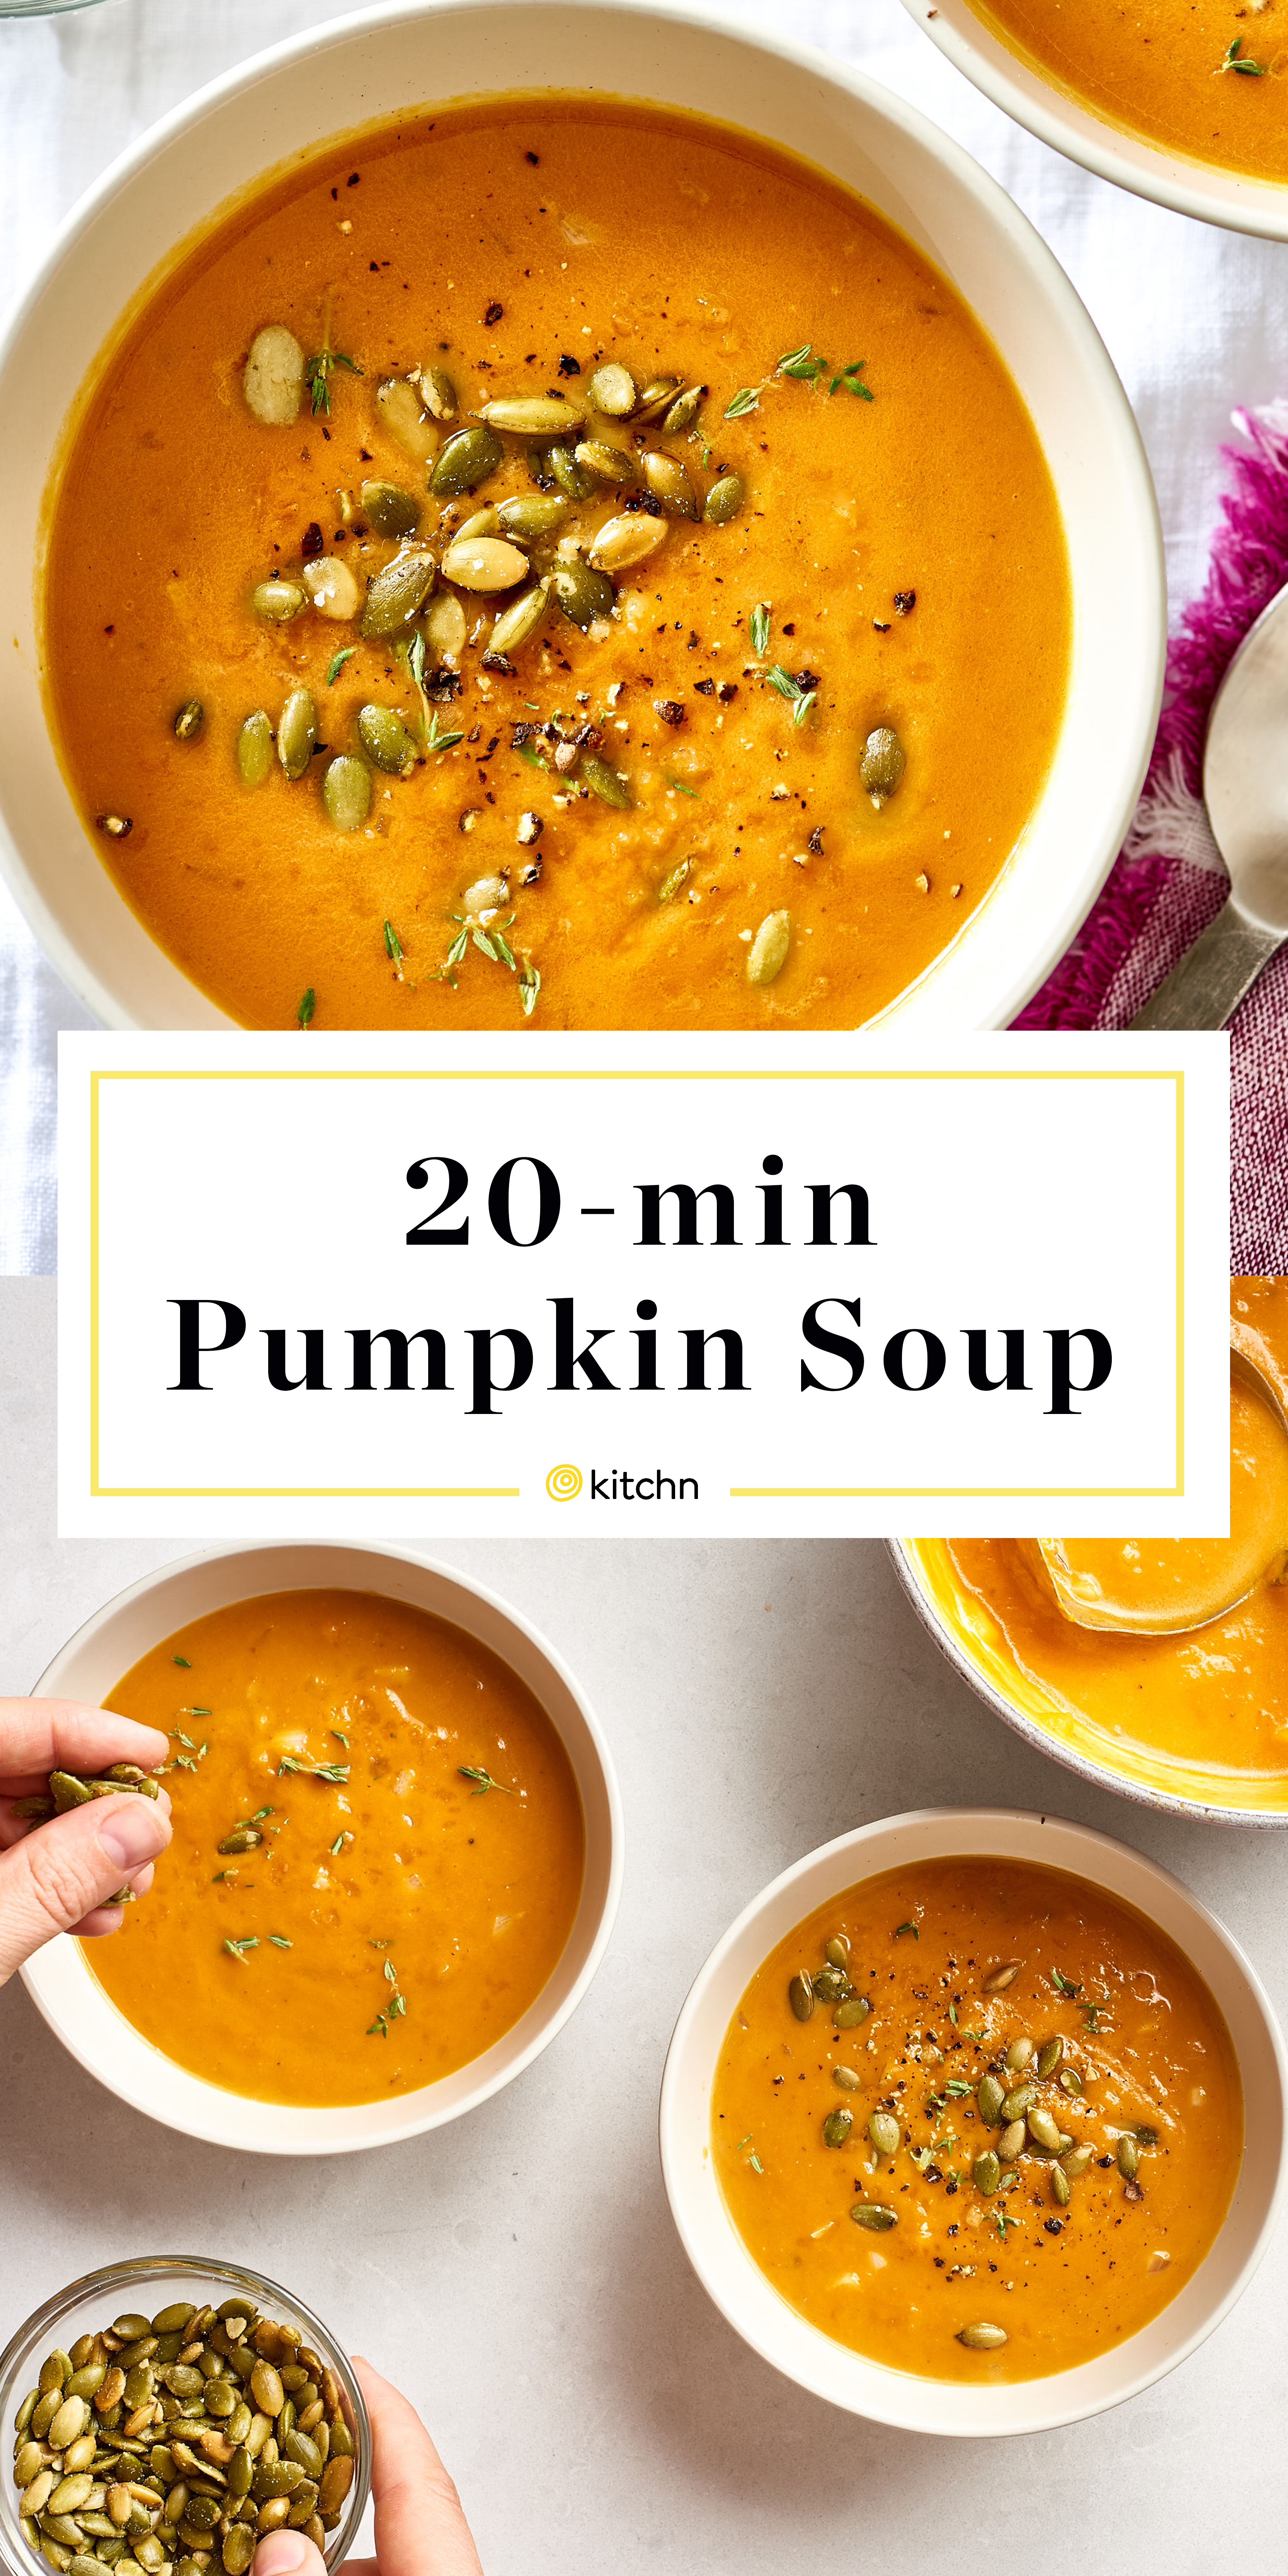 How To Make Pumpkin Soup In 20 Minutes Kitchn